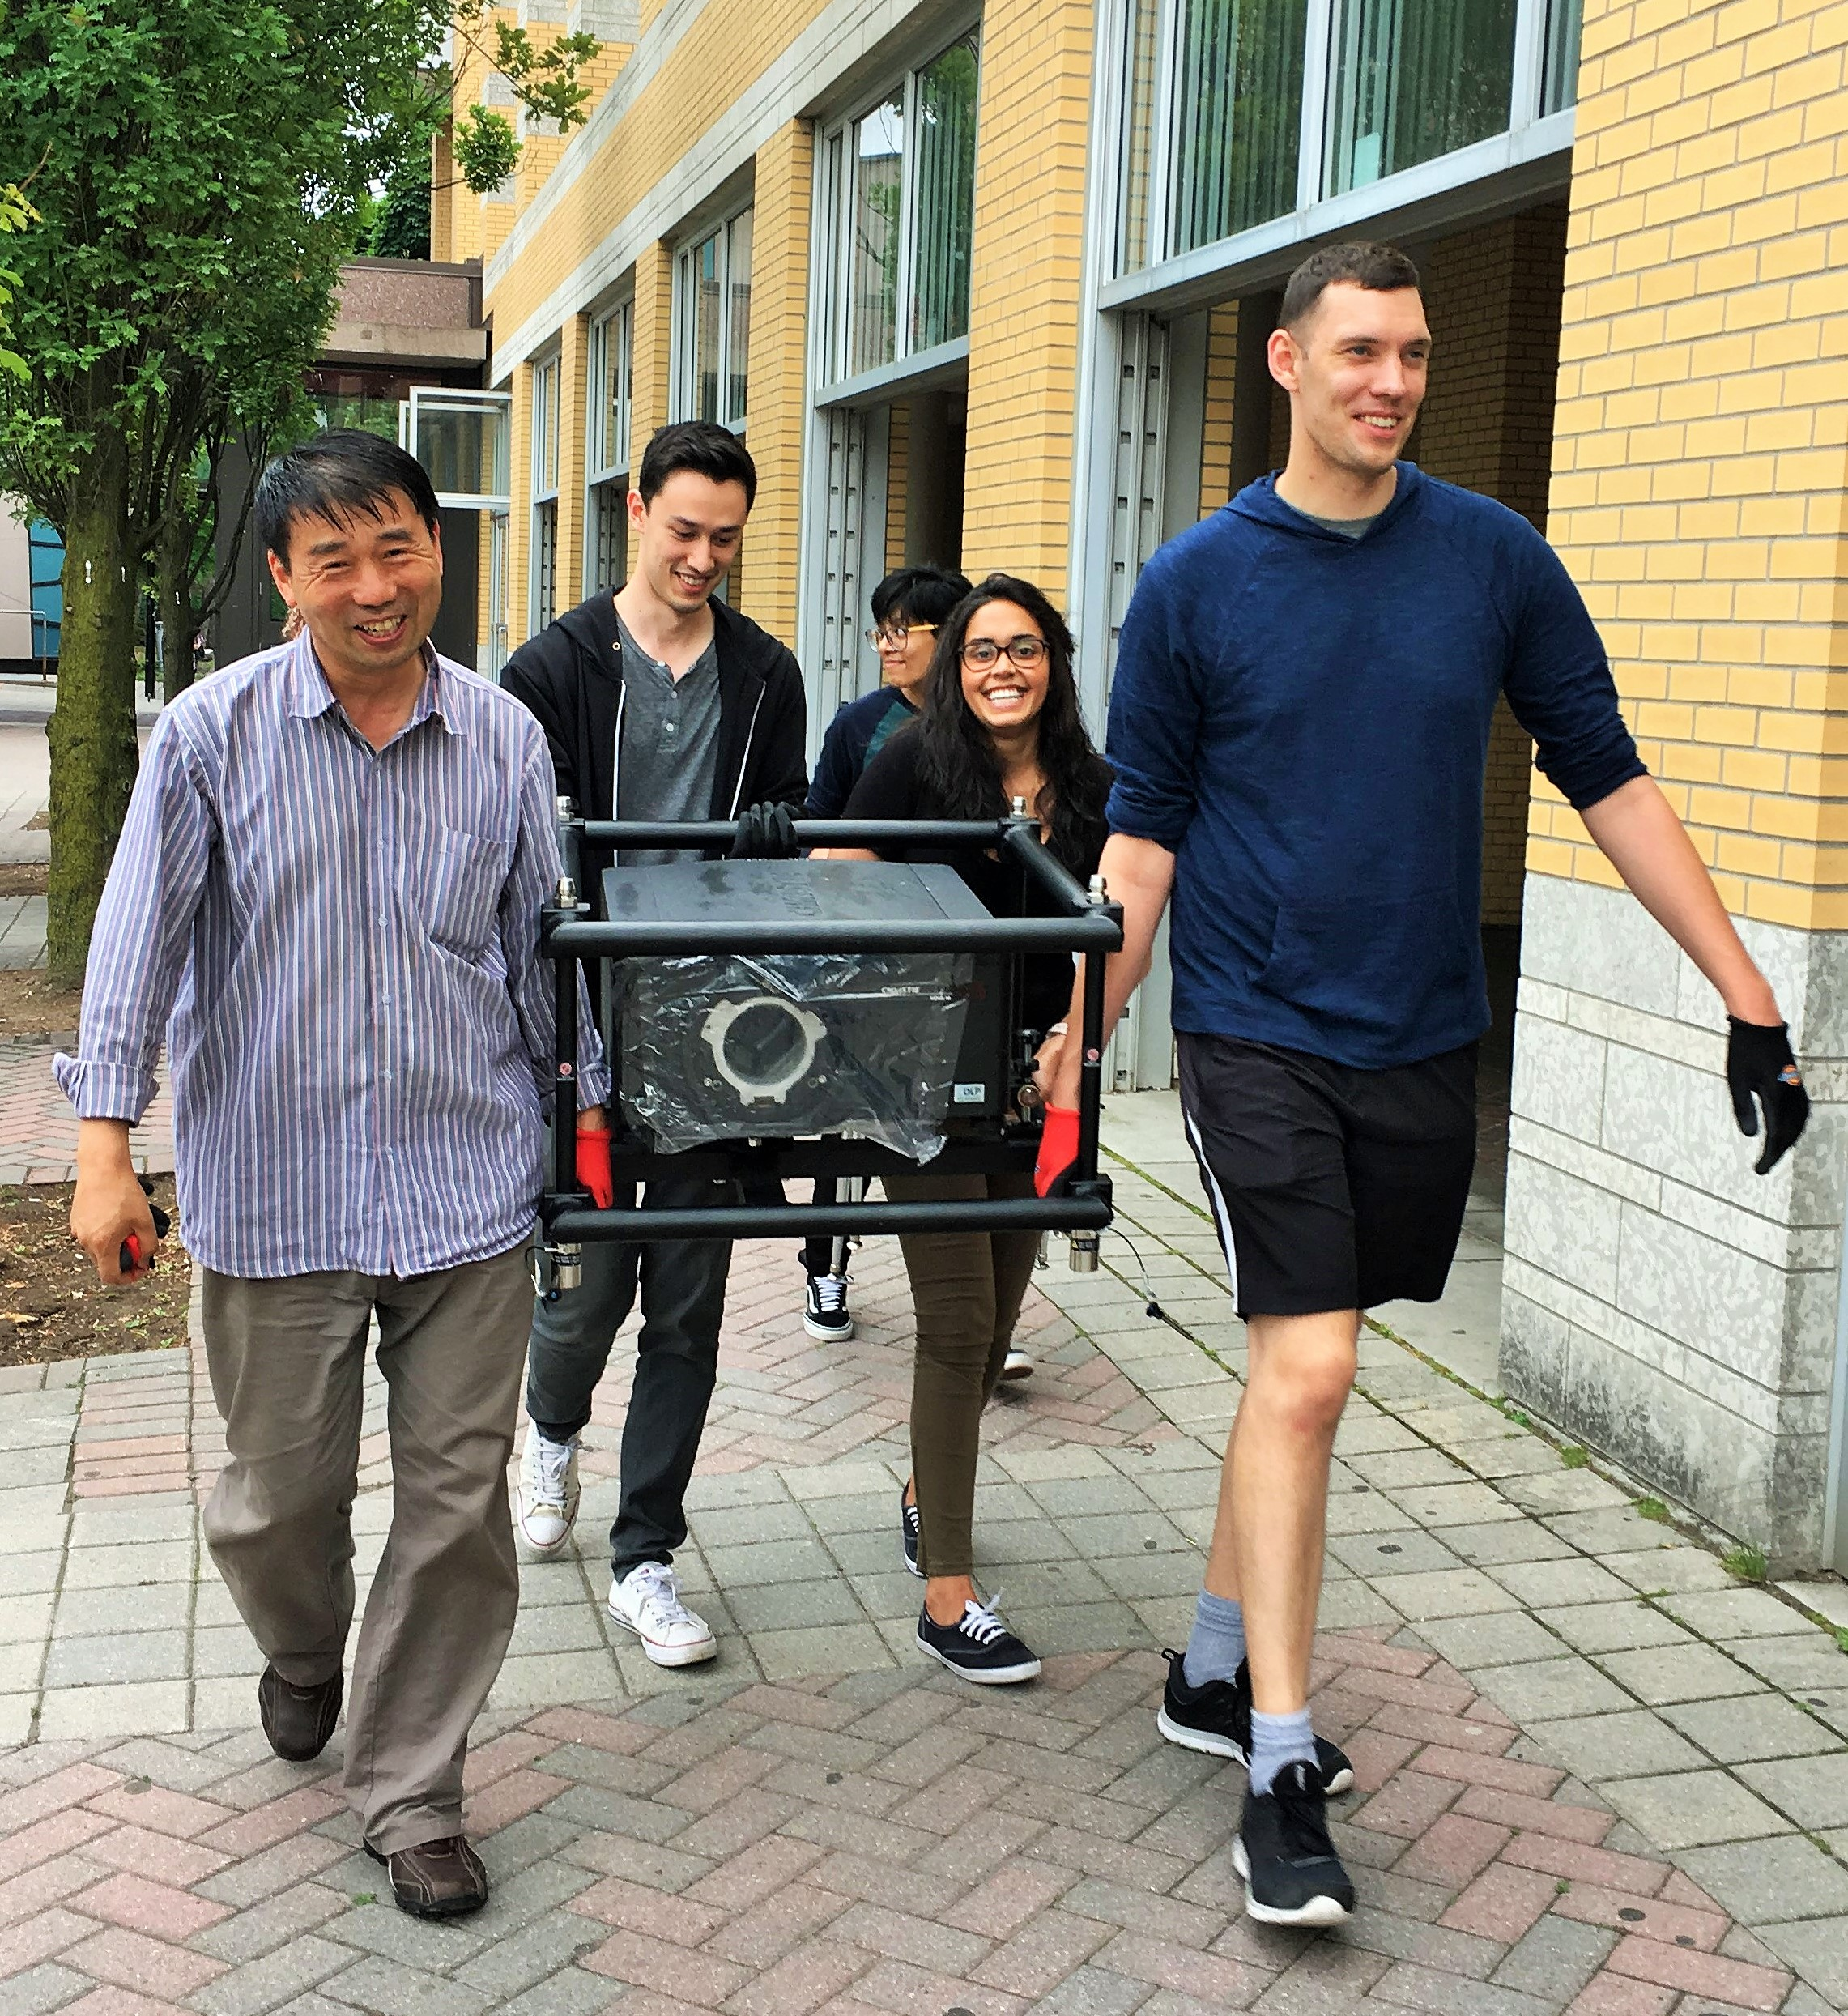 Transporting the Christie Mirage 3D projector with utmost care.